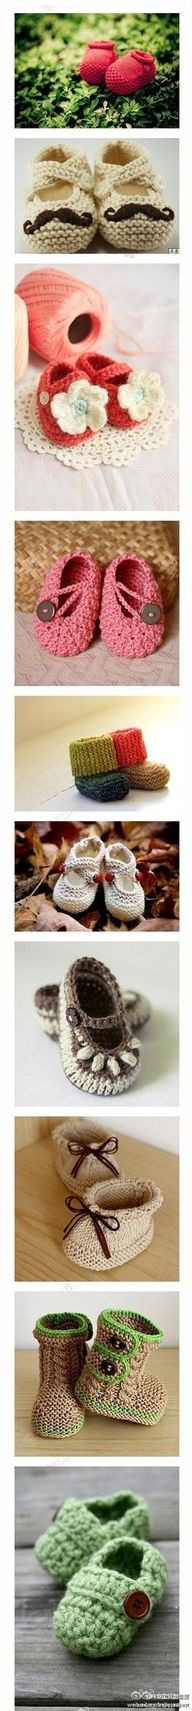 lovely crochet baby shoes.